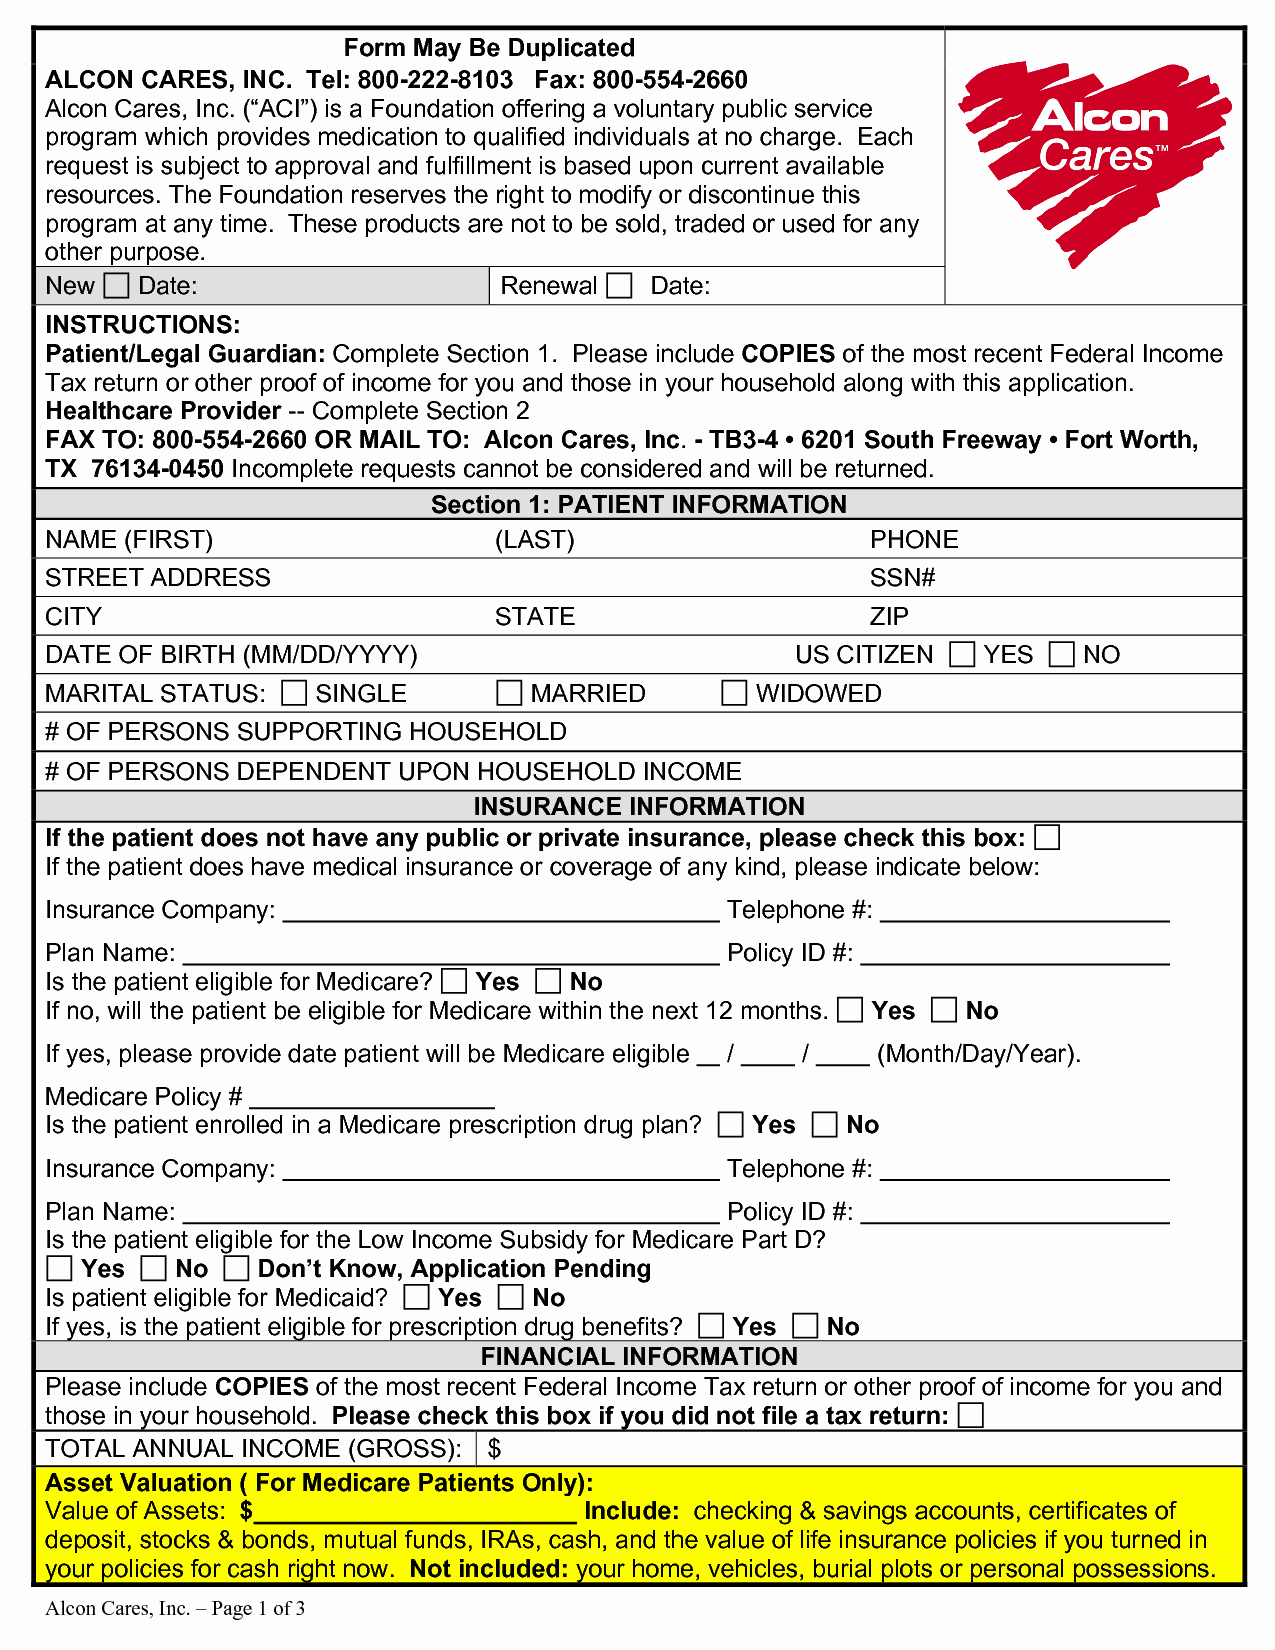 Ohio Medical Power Of Attorney Forms Free Printable - 8.18 - Free Printable Medical Power Of Attorney